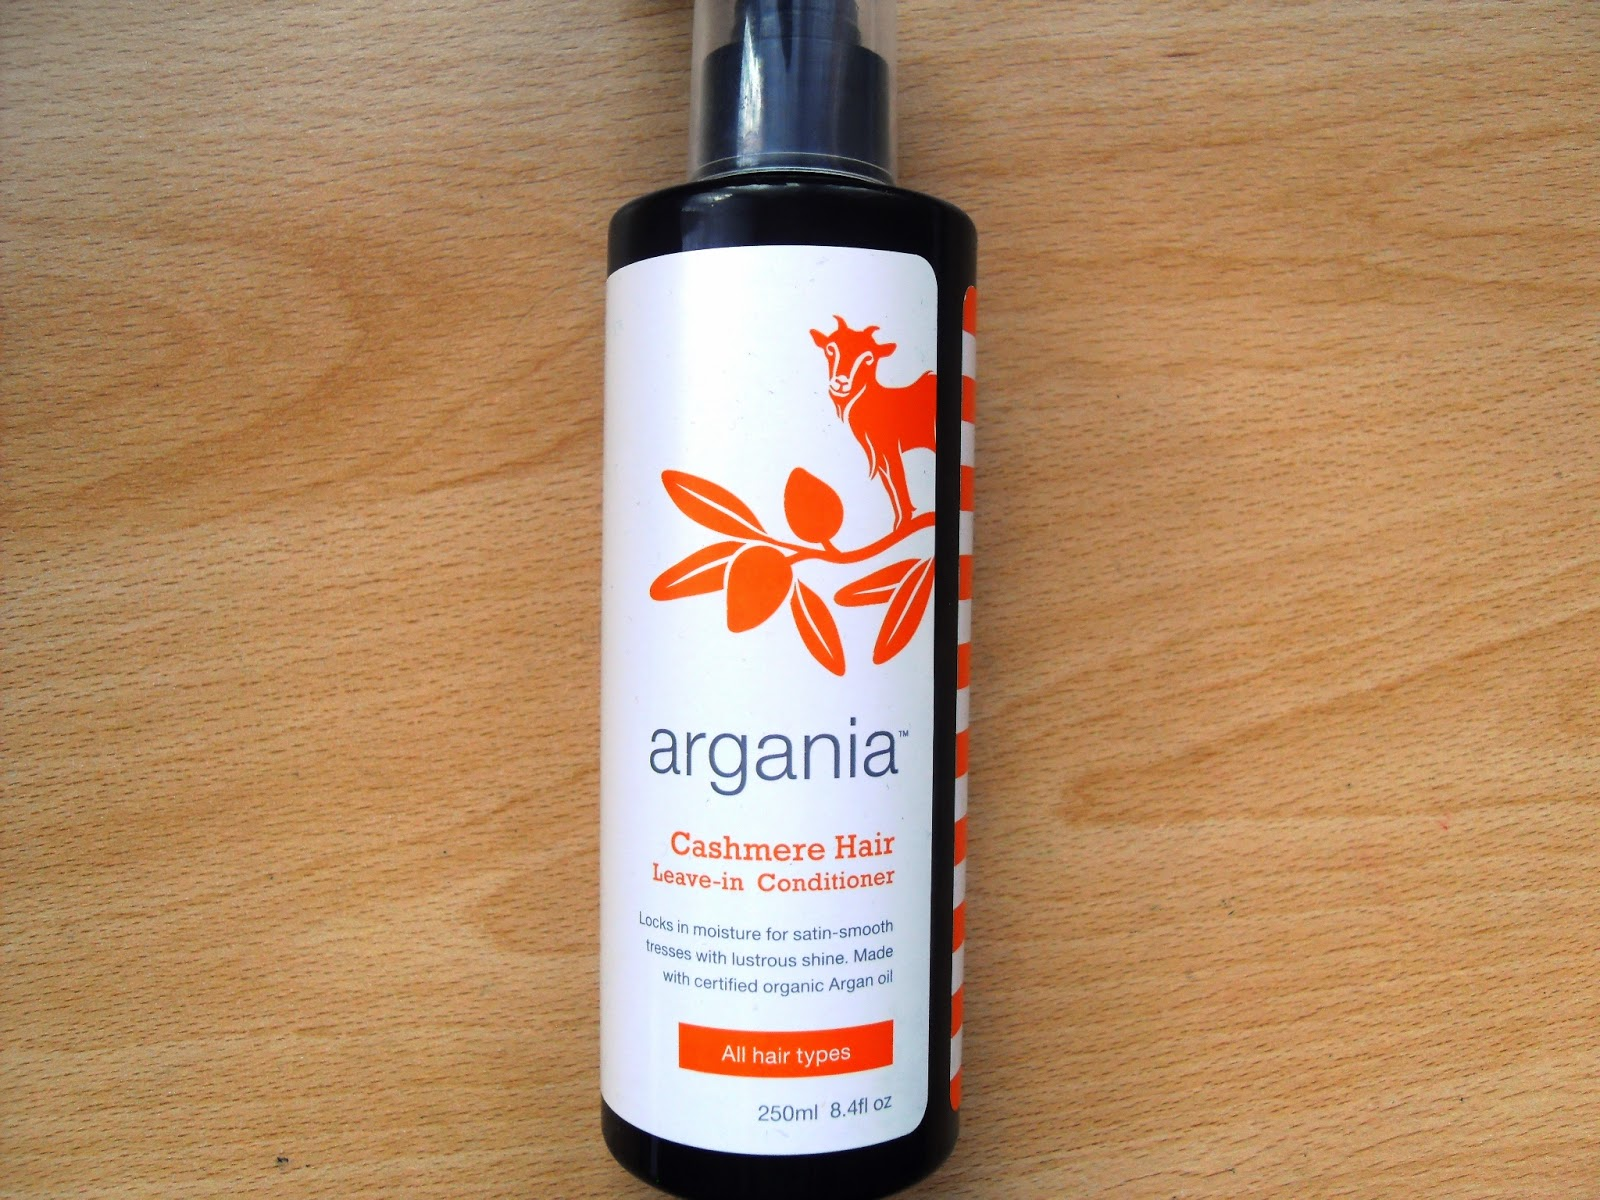 Argania Cashmere Hair Leave-in Conditioner Review